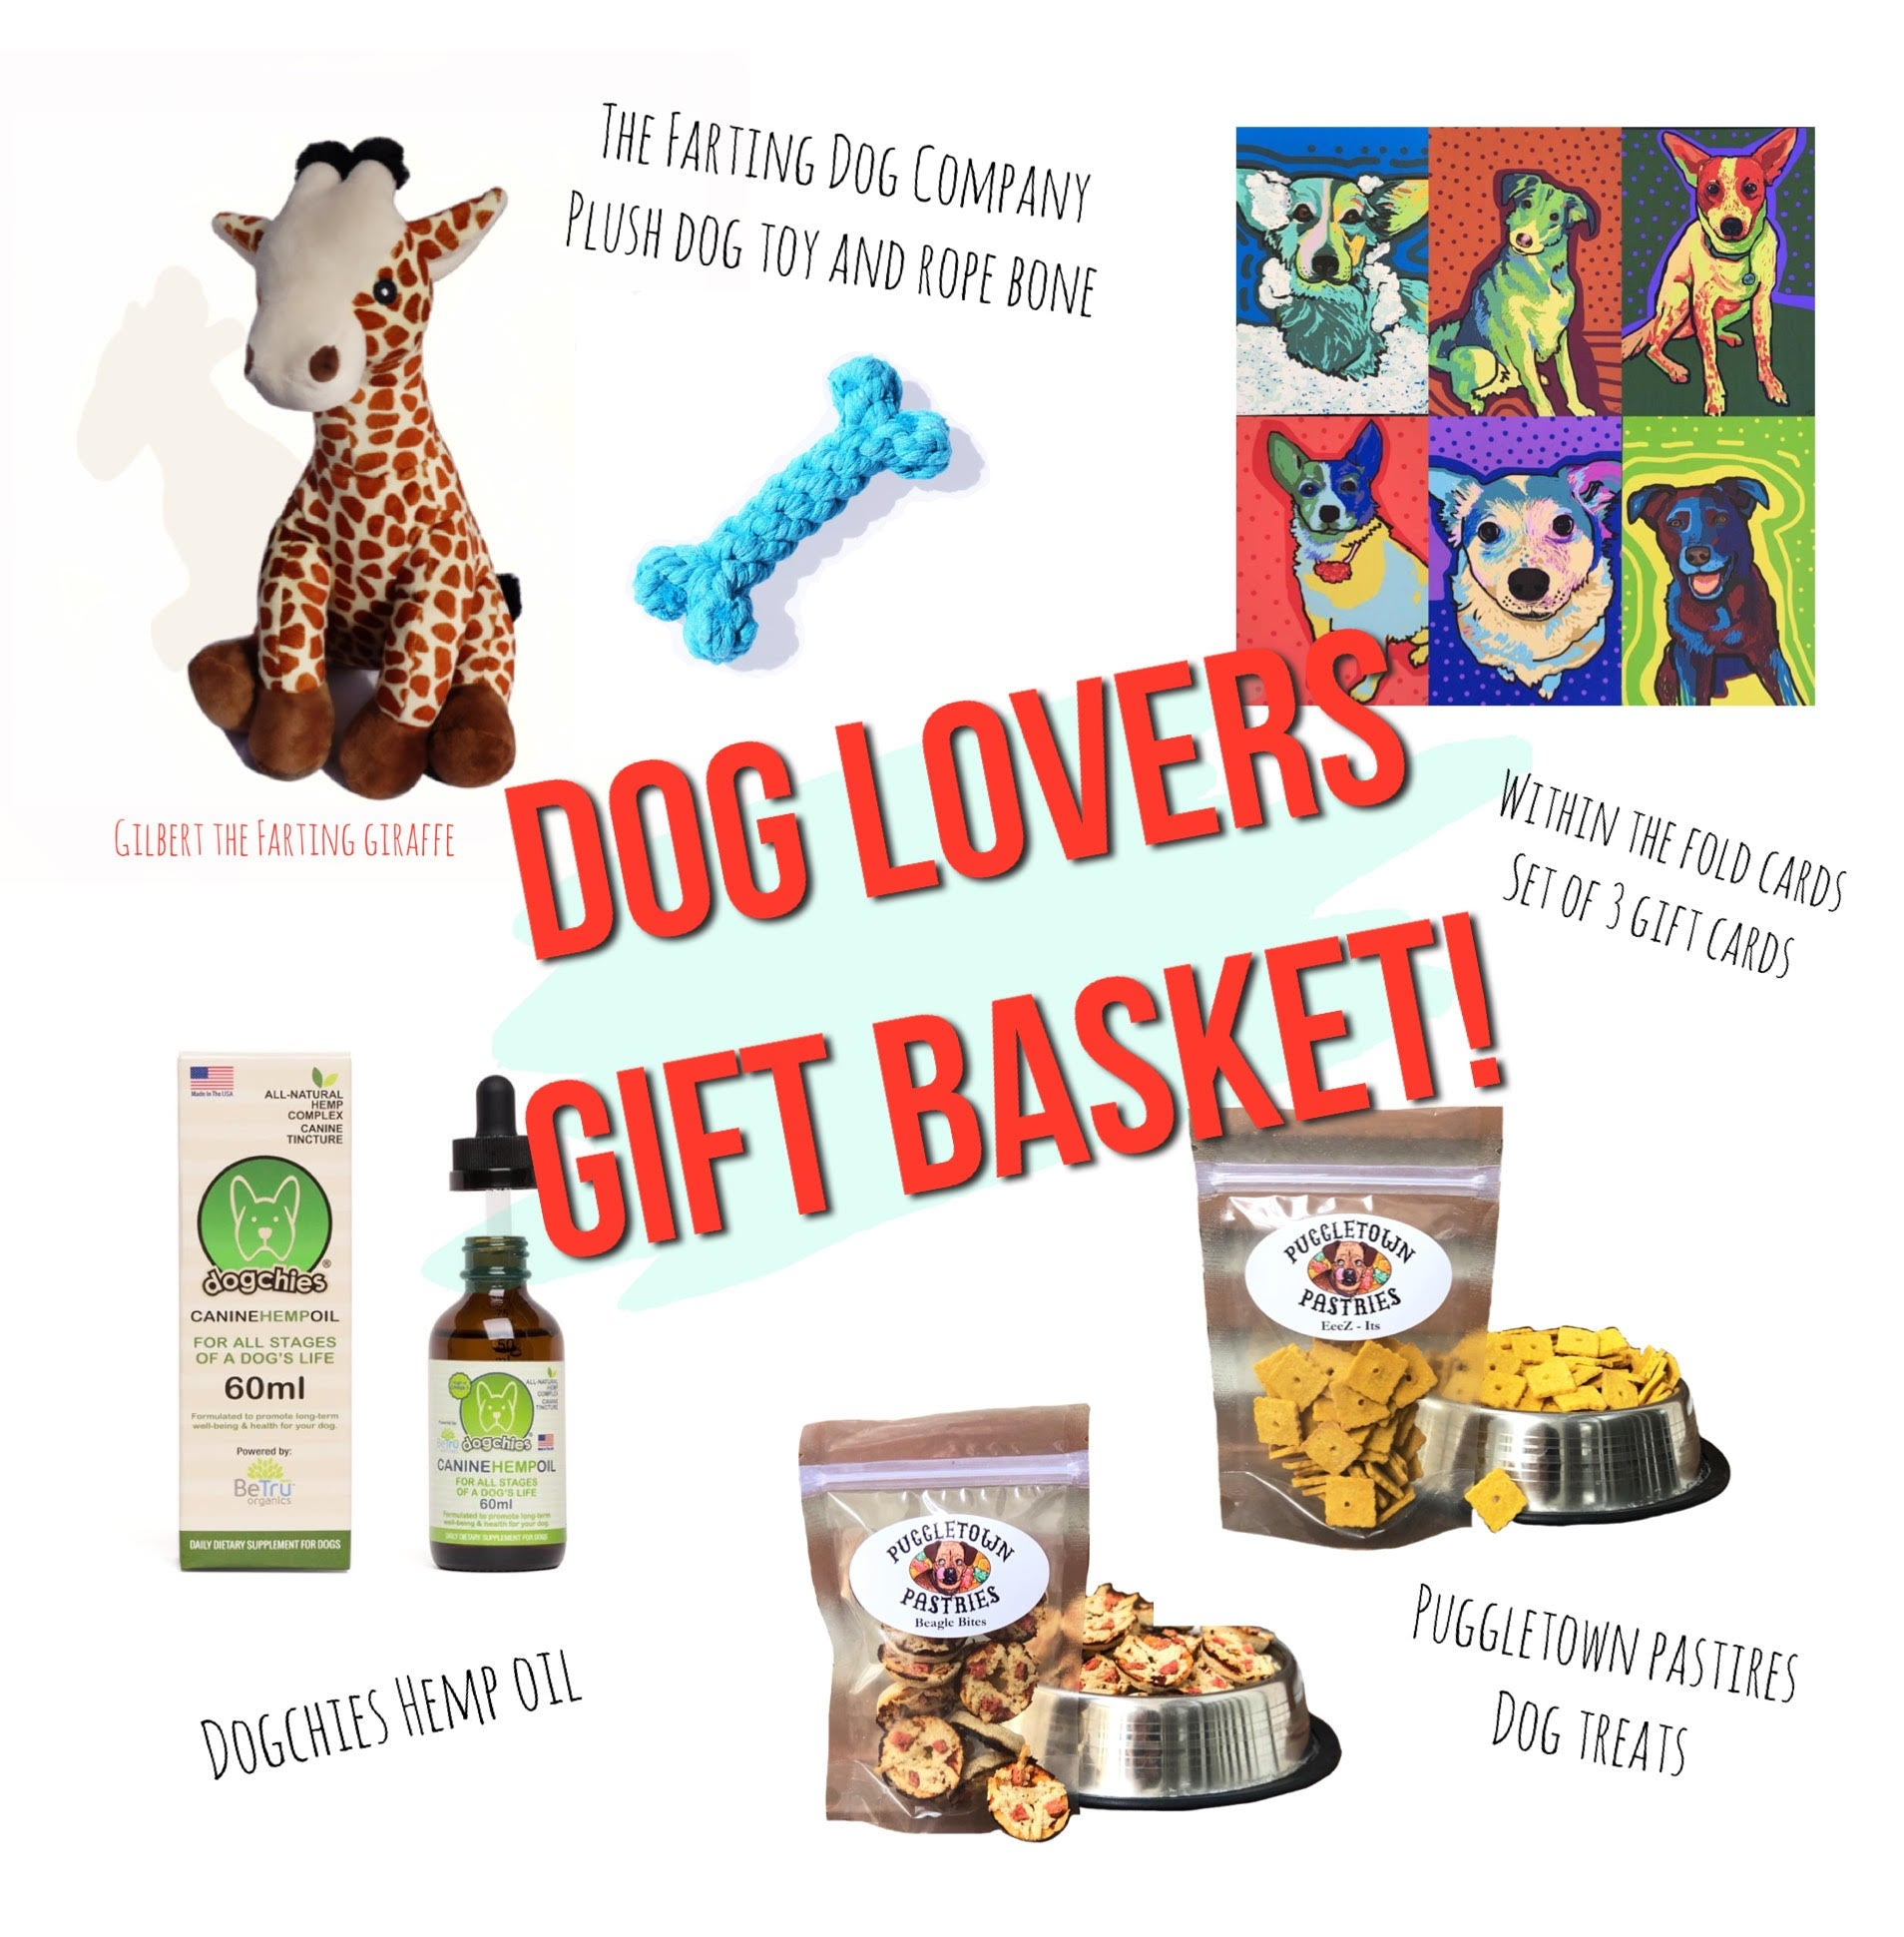 Win a Dog Lover's Gift Basket!